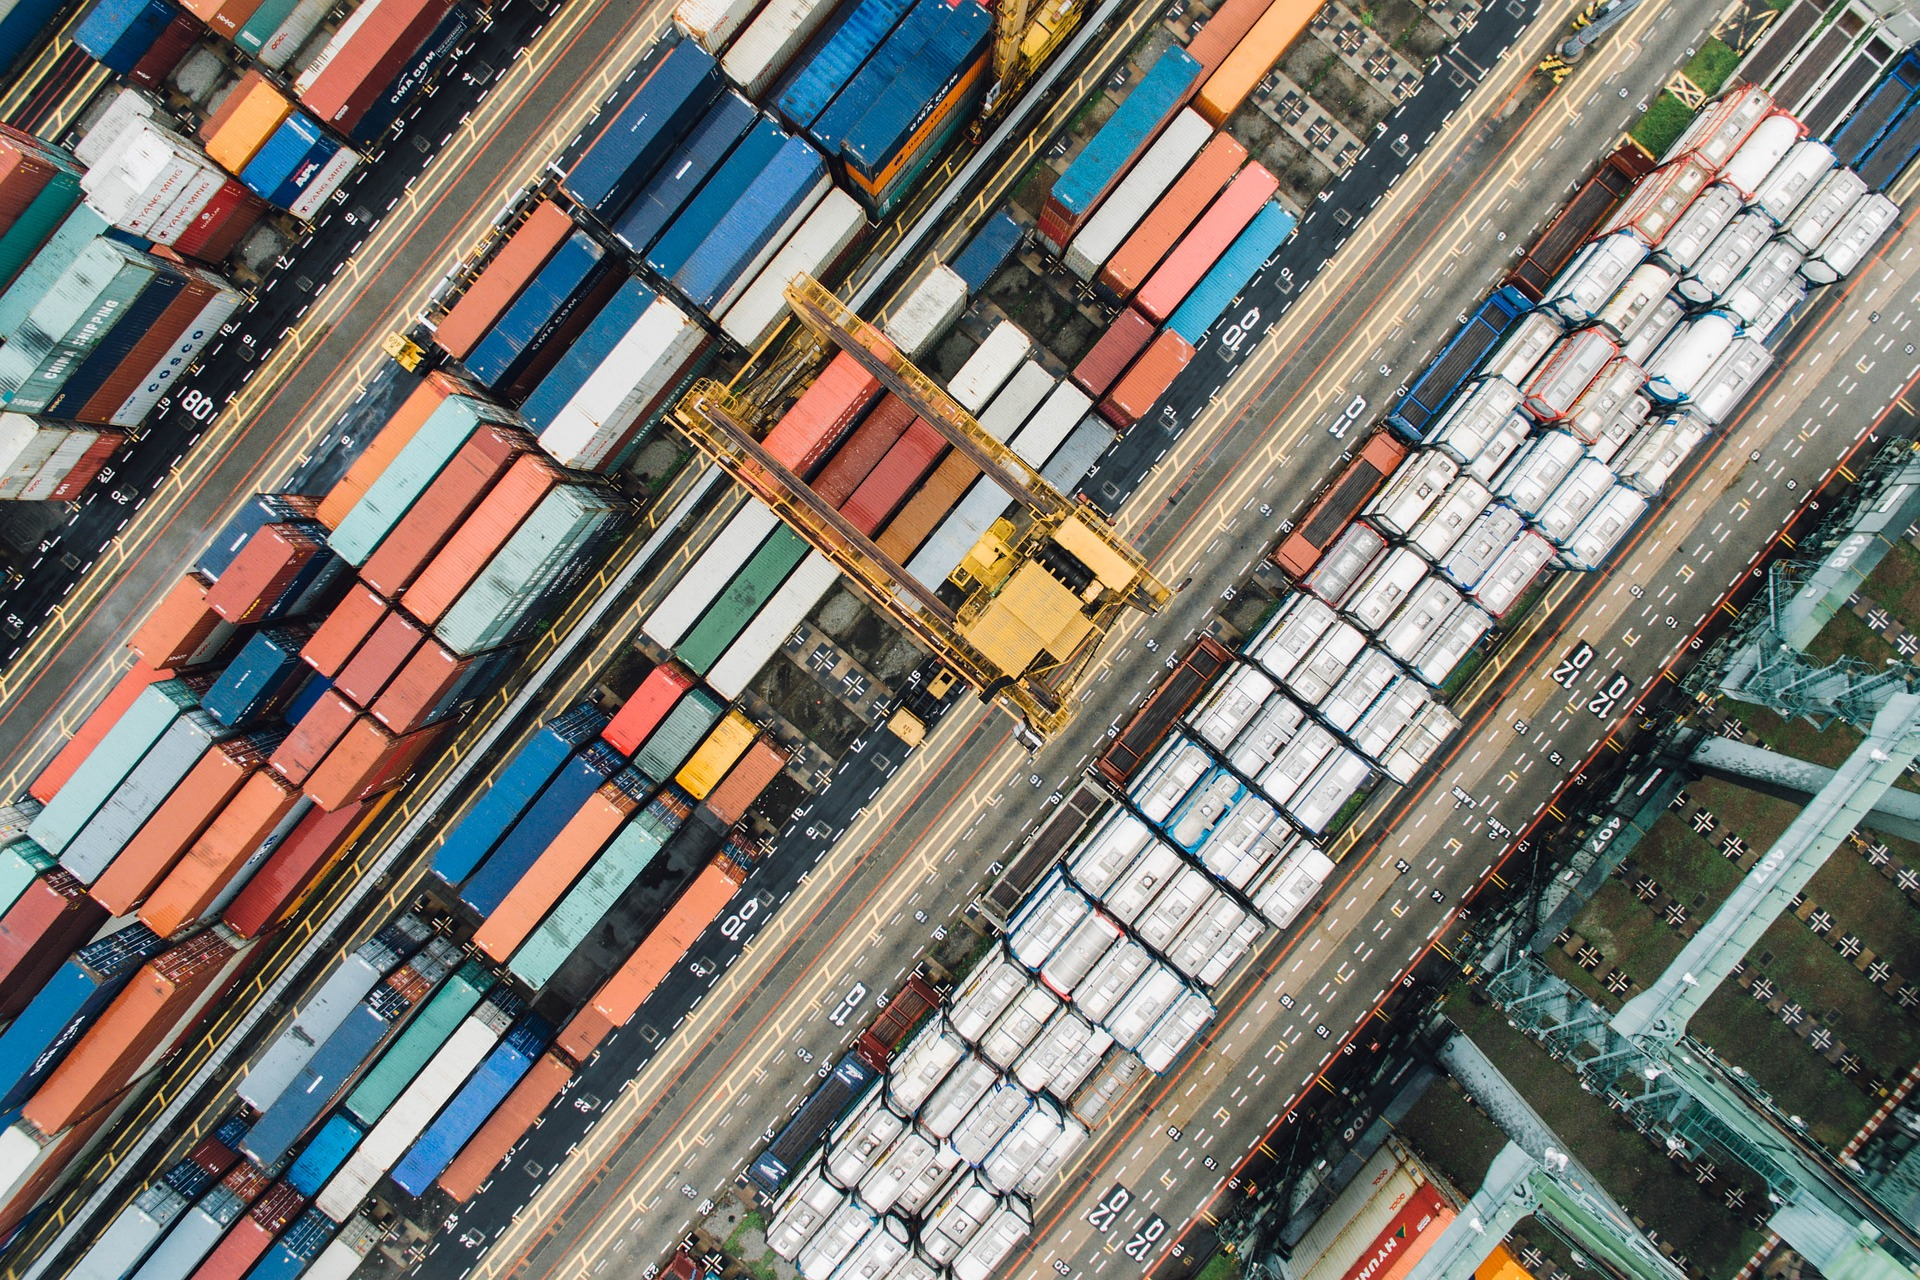 Drone shot of shipping containers